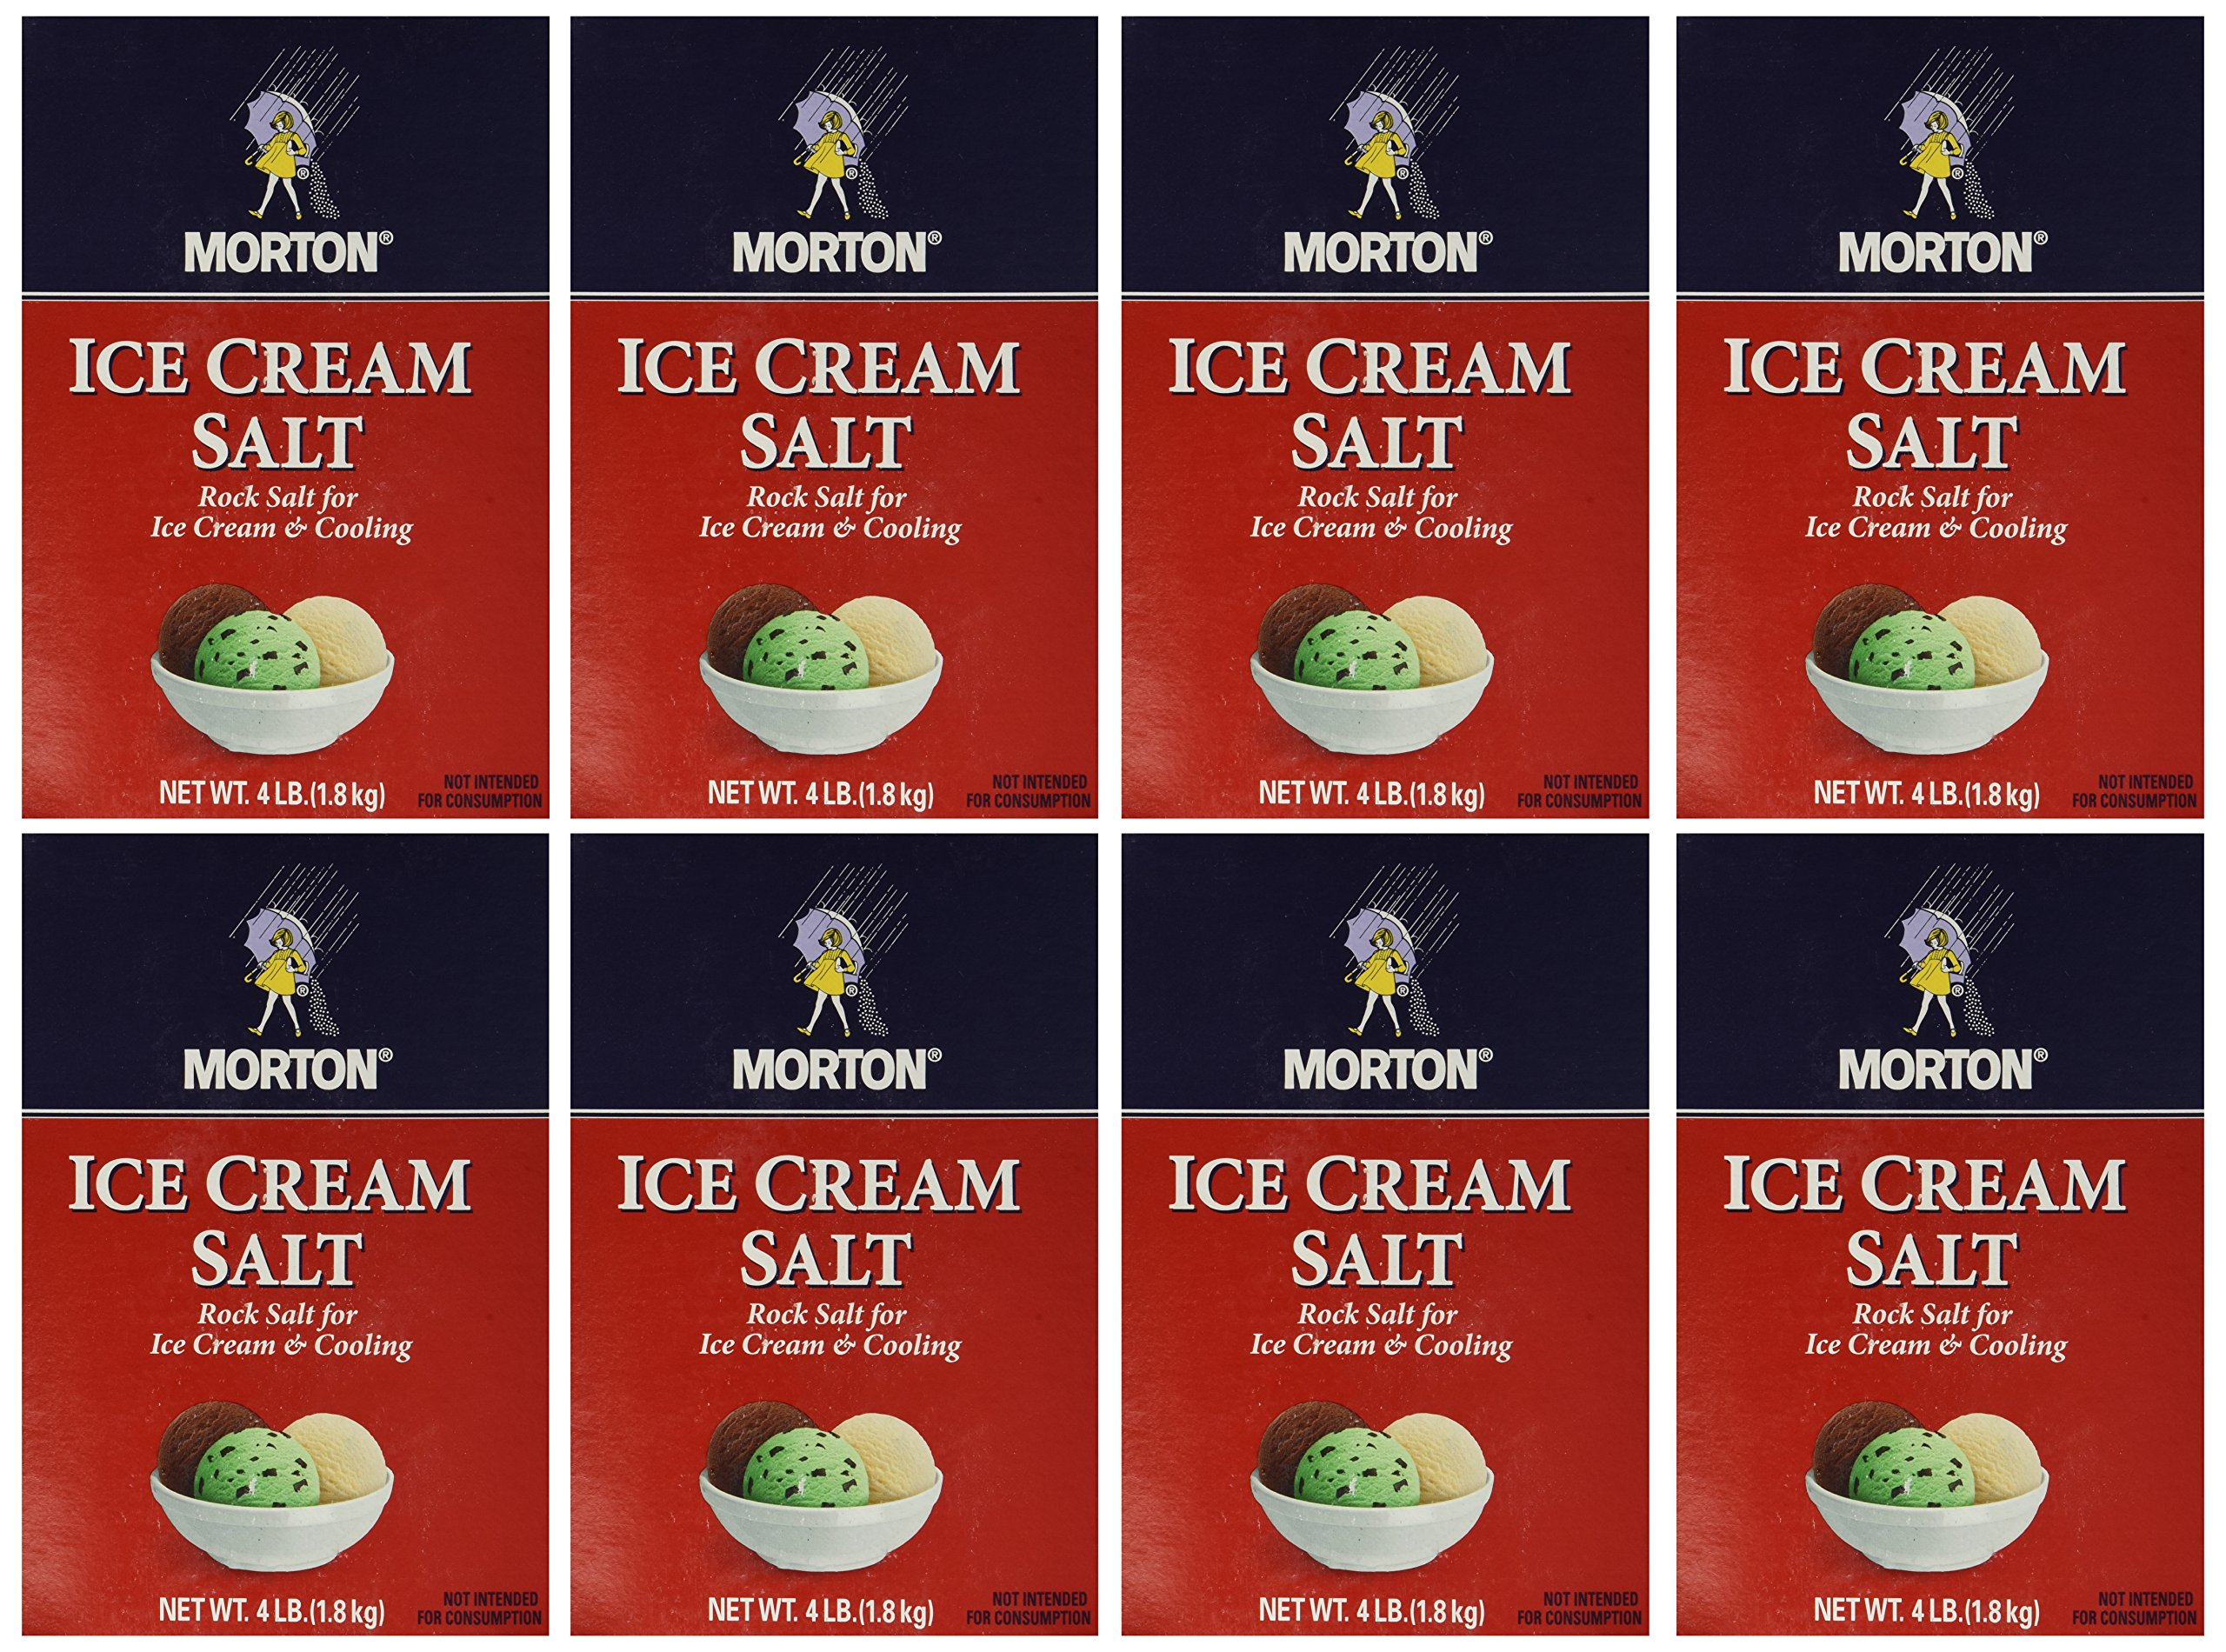 Morton Ice Cream/Rock Salt, 4-Pound (Pack of 8) by Morton (Image #1)